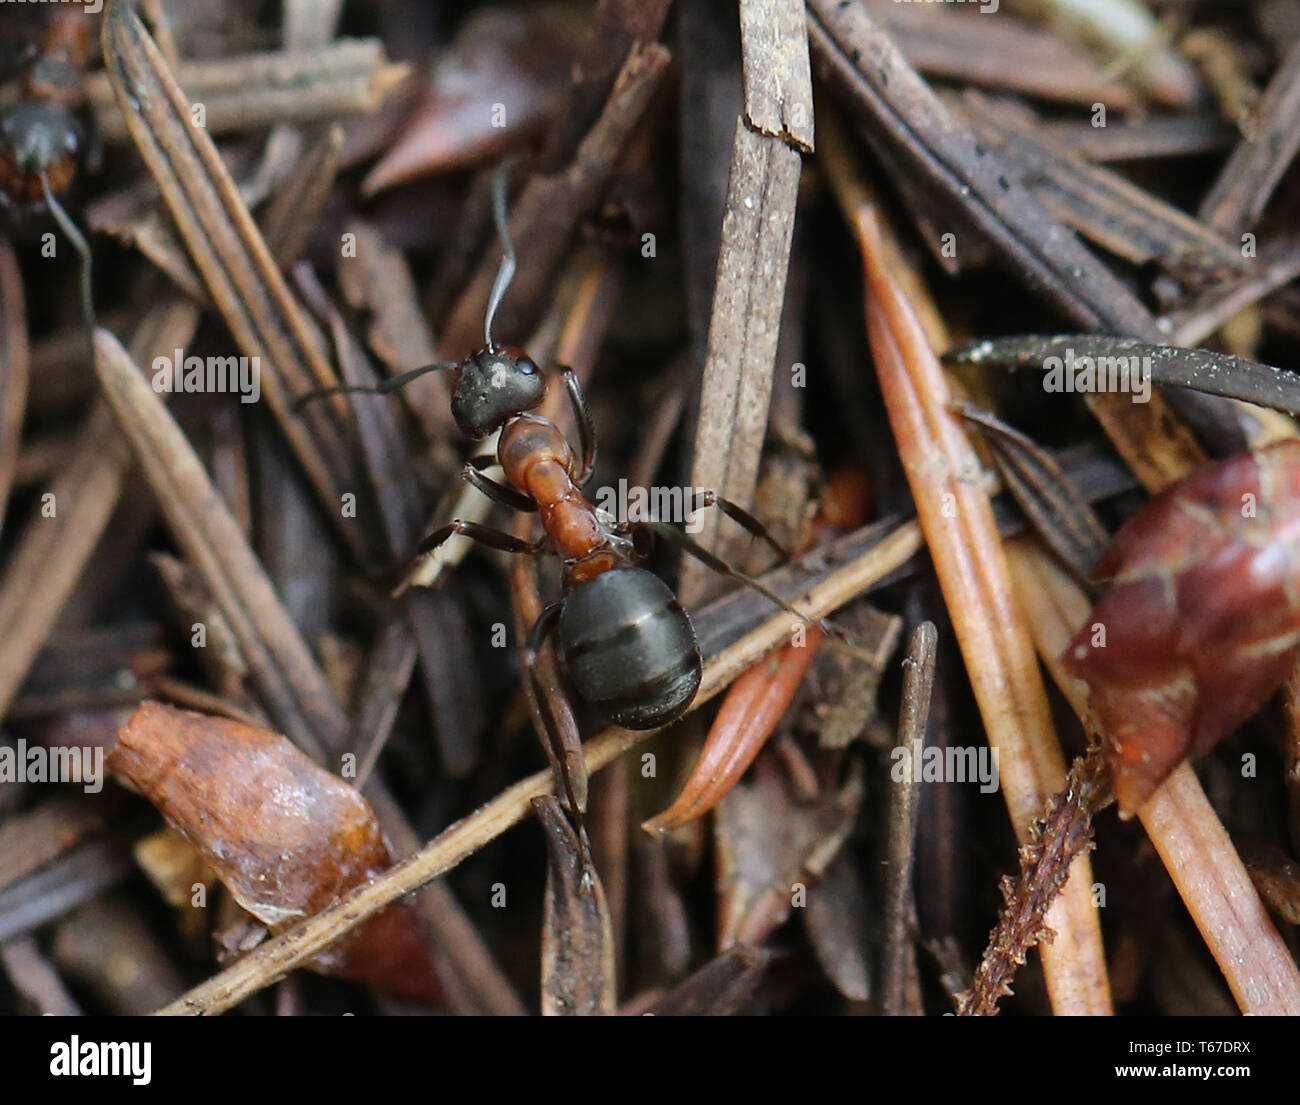 Horse ant or Red Wood Ant, Formica rufa, Germany - Stock Image